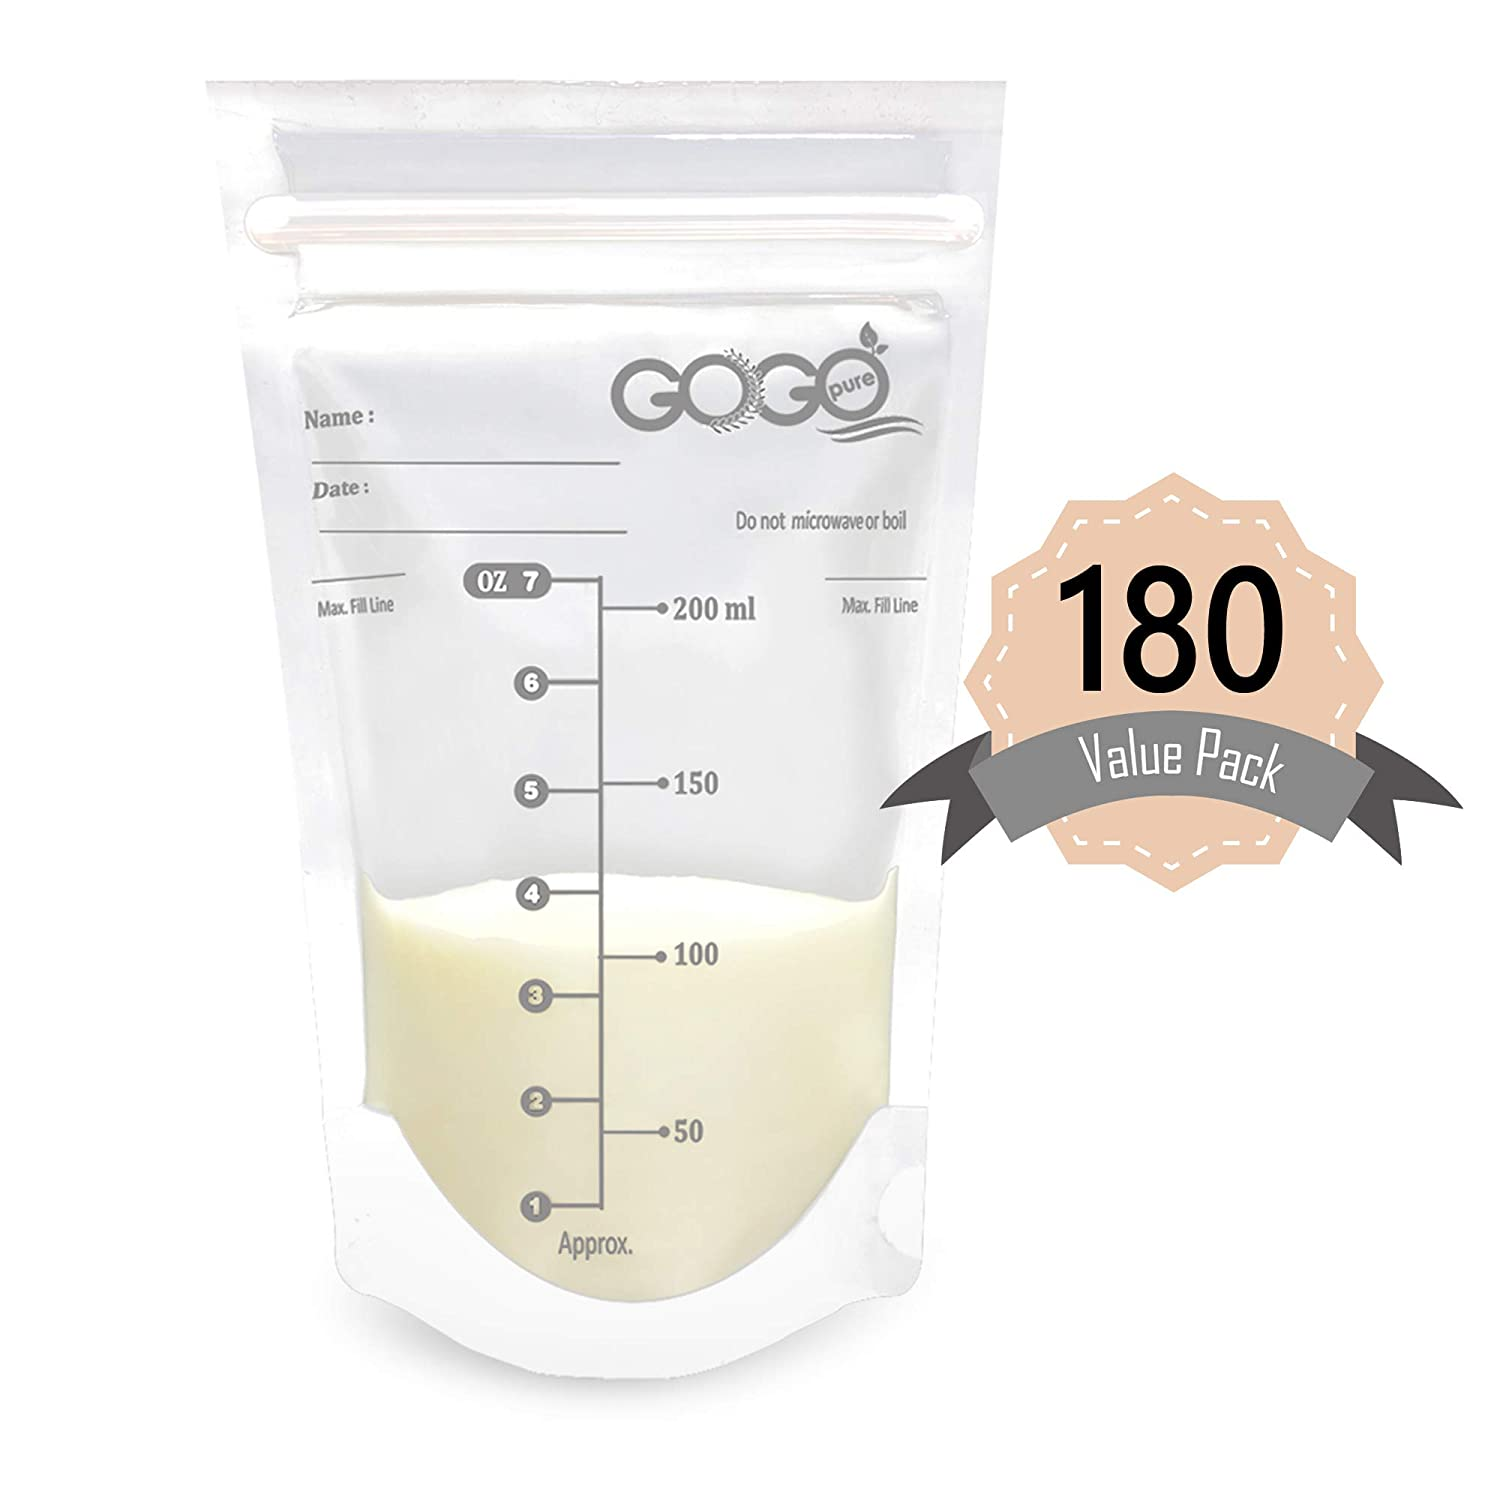 180 CT (3 Pack of 60 Bags) Value Pack Breastmilk Storage Bags - 7 OZ, Pre-Sterilized, BPA Free, Leak Proof Double Zipper Seal, Self Standing, for Refrigeration and Freezing - Only Available at Amazon